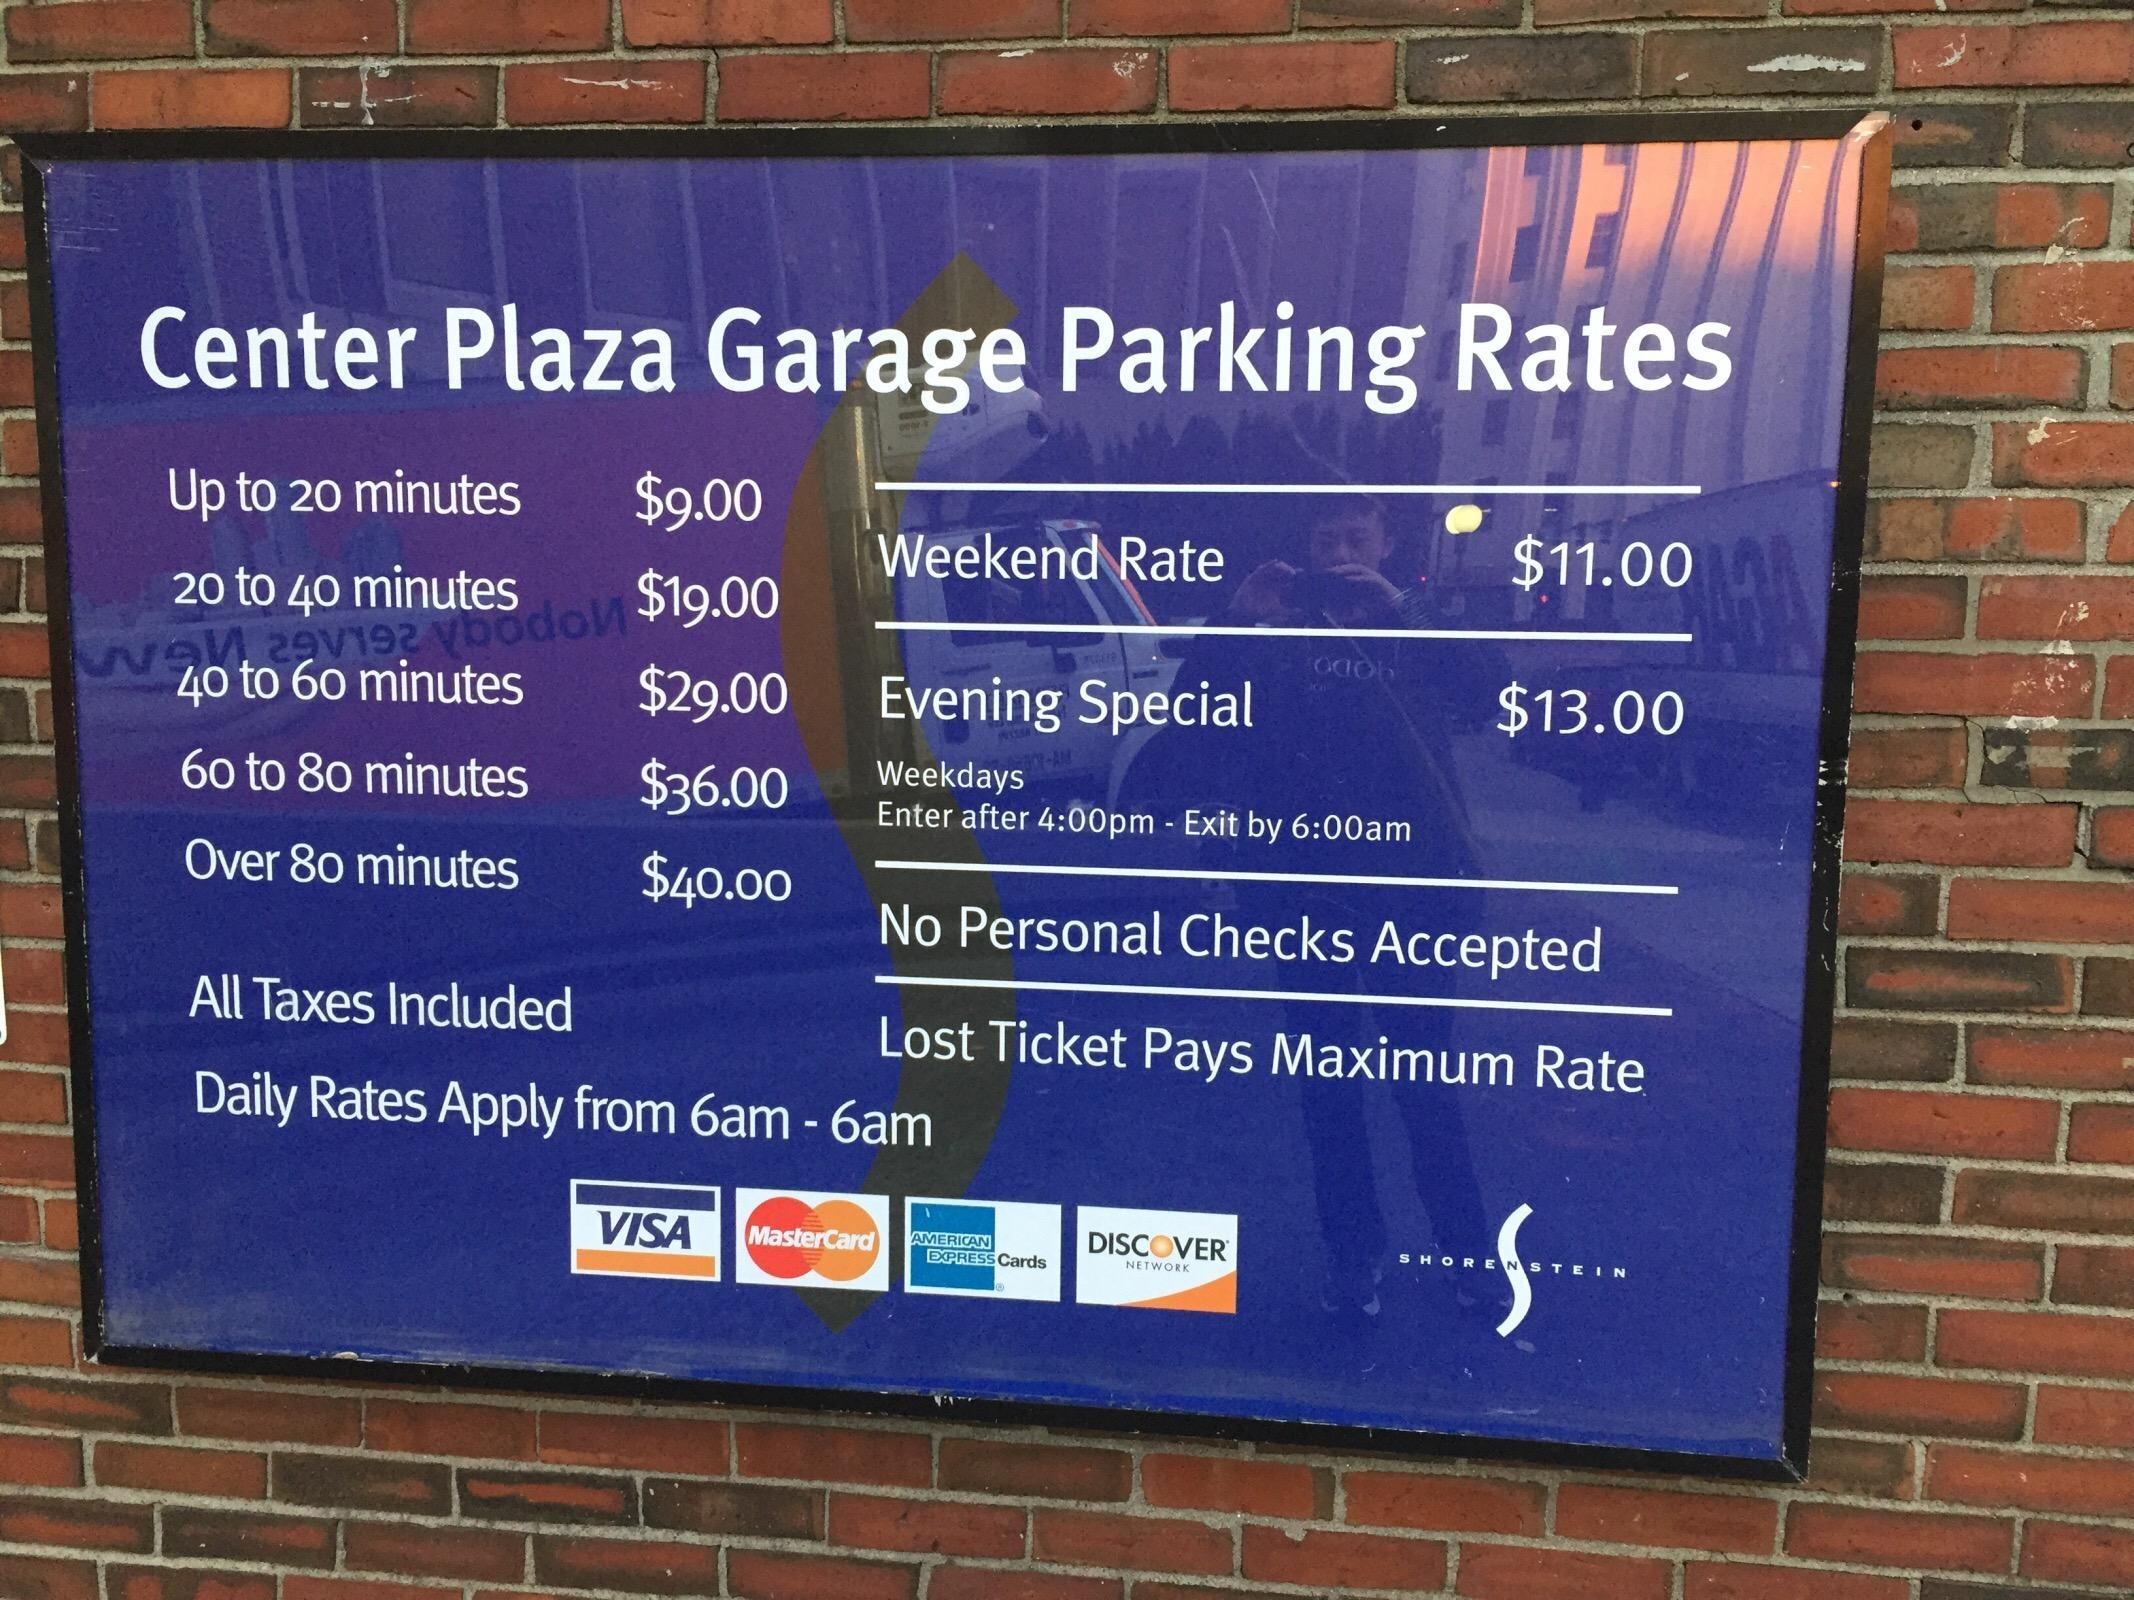 Cheapest Garage In Boston Center Plaza Garage Parking In Boston Parkme